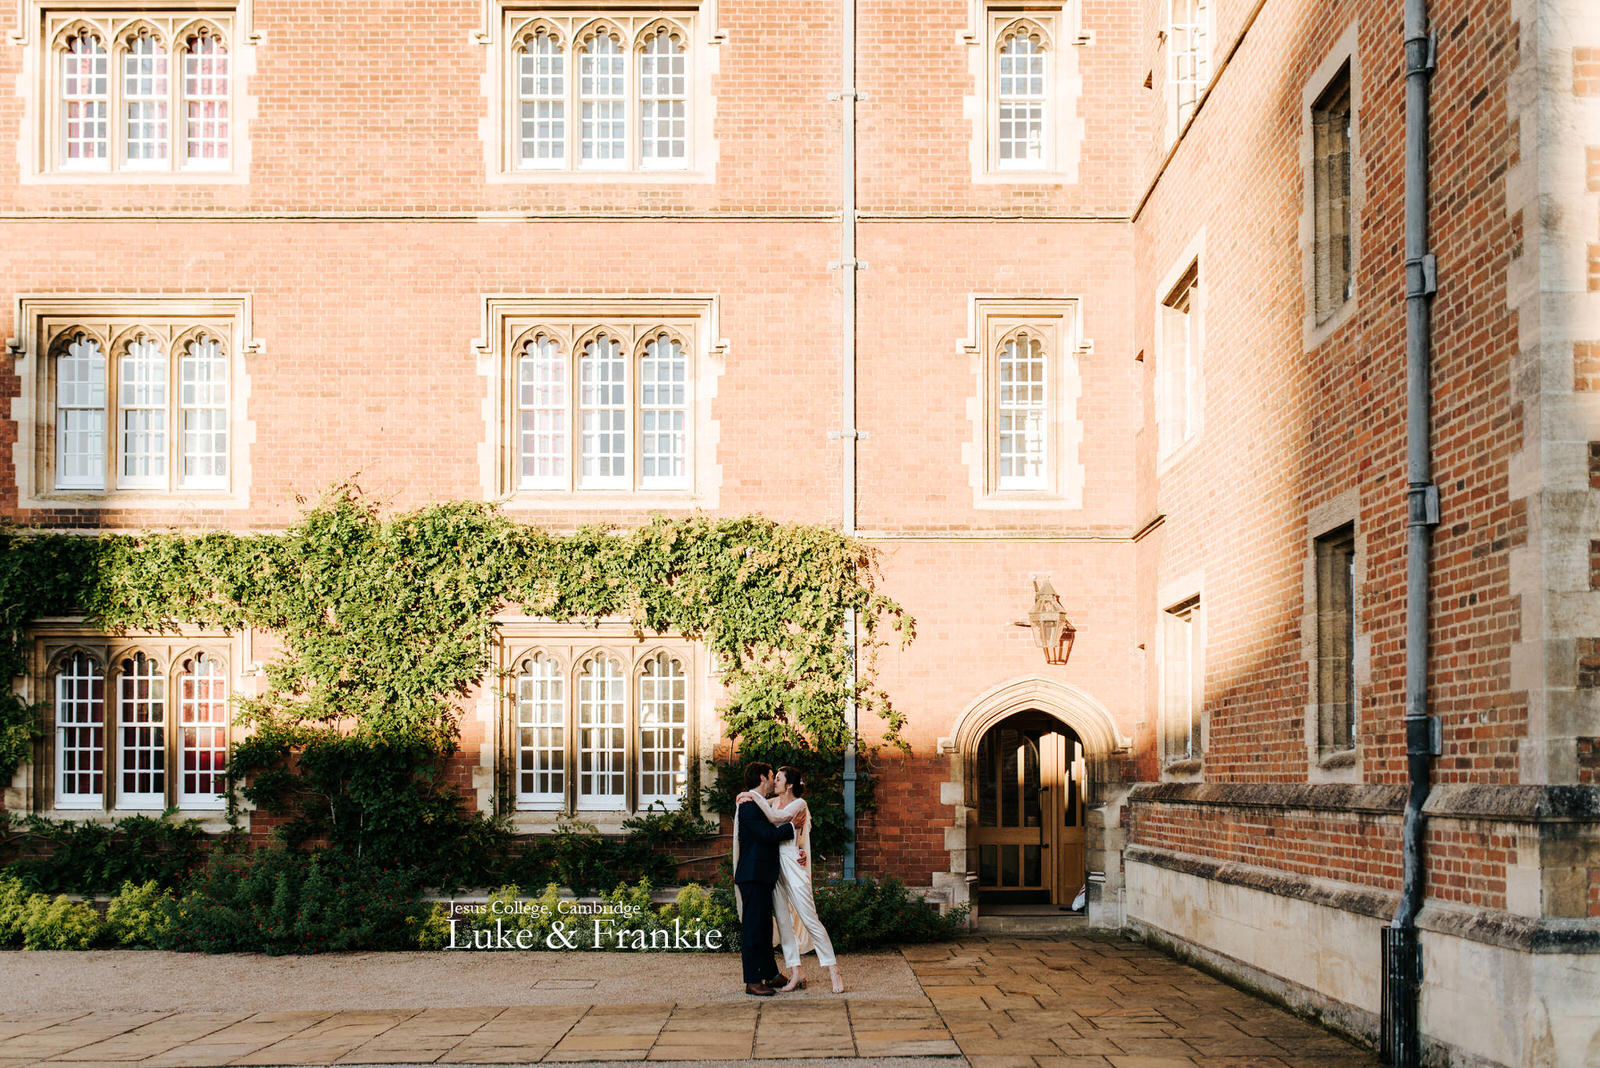 Bride and groom embrace each other in front of Chapel Court at Jesus College in Cambridge